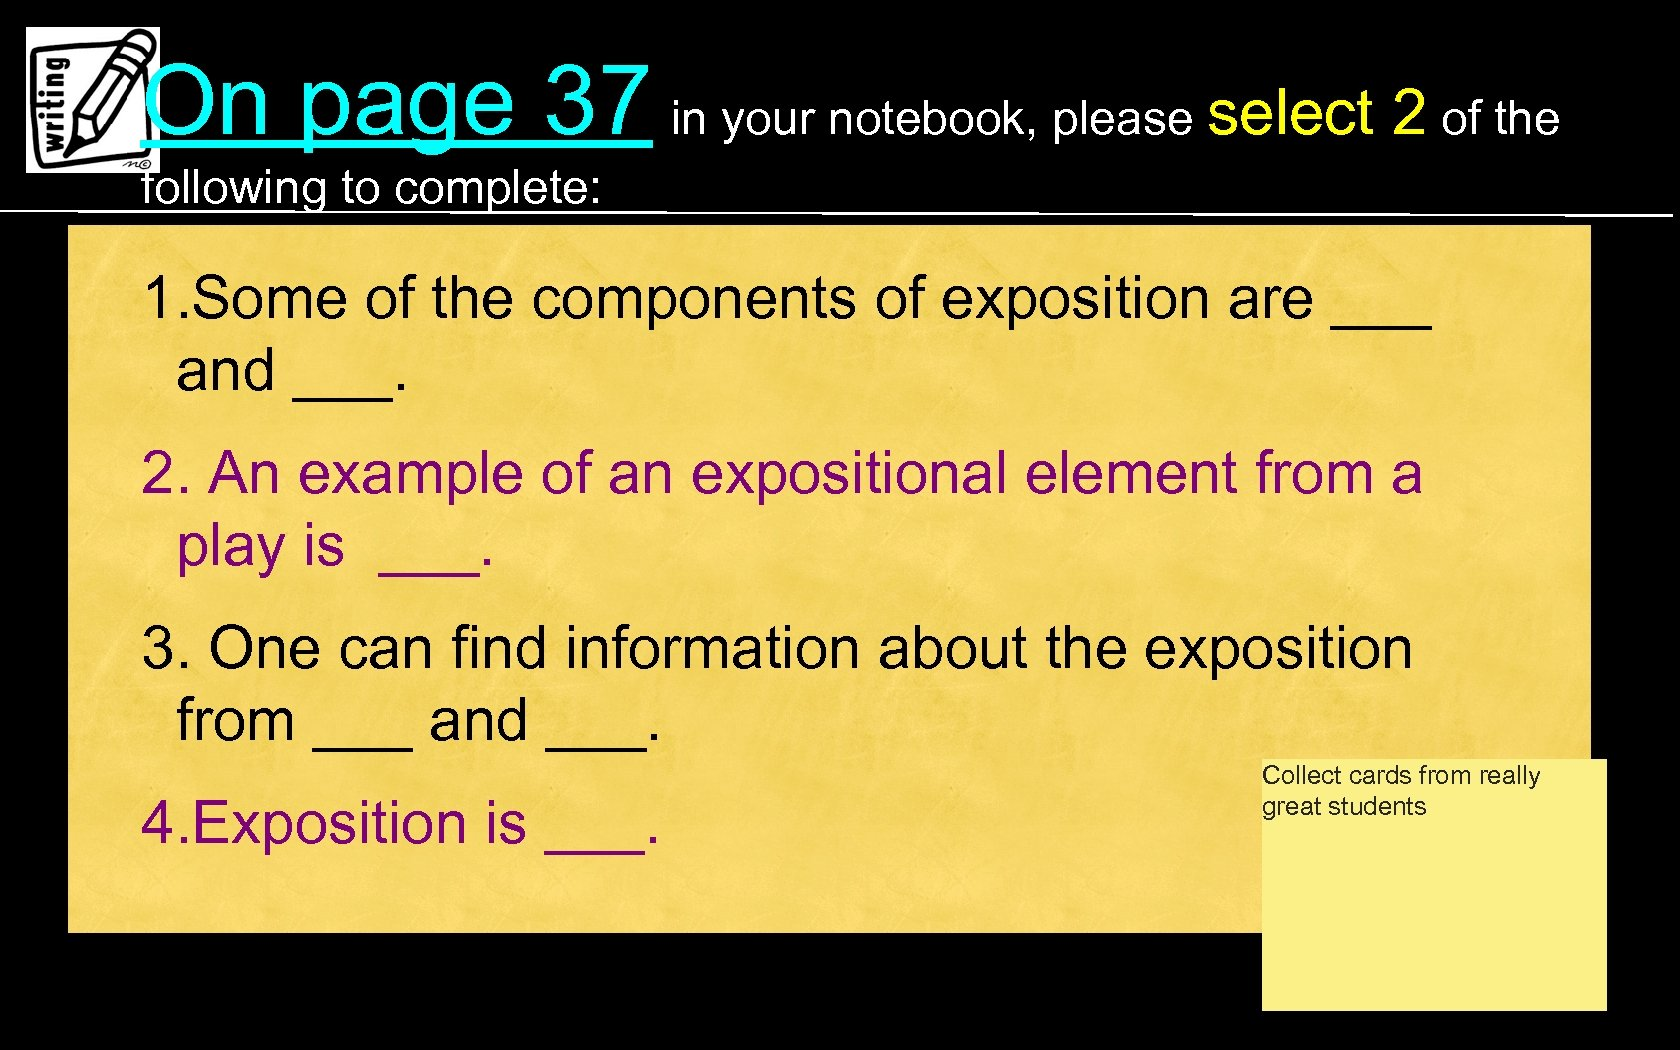 On page 37 in your notebook, please select 2 of the following to complete: